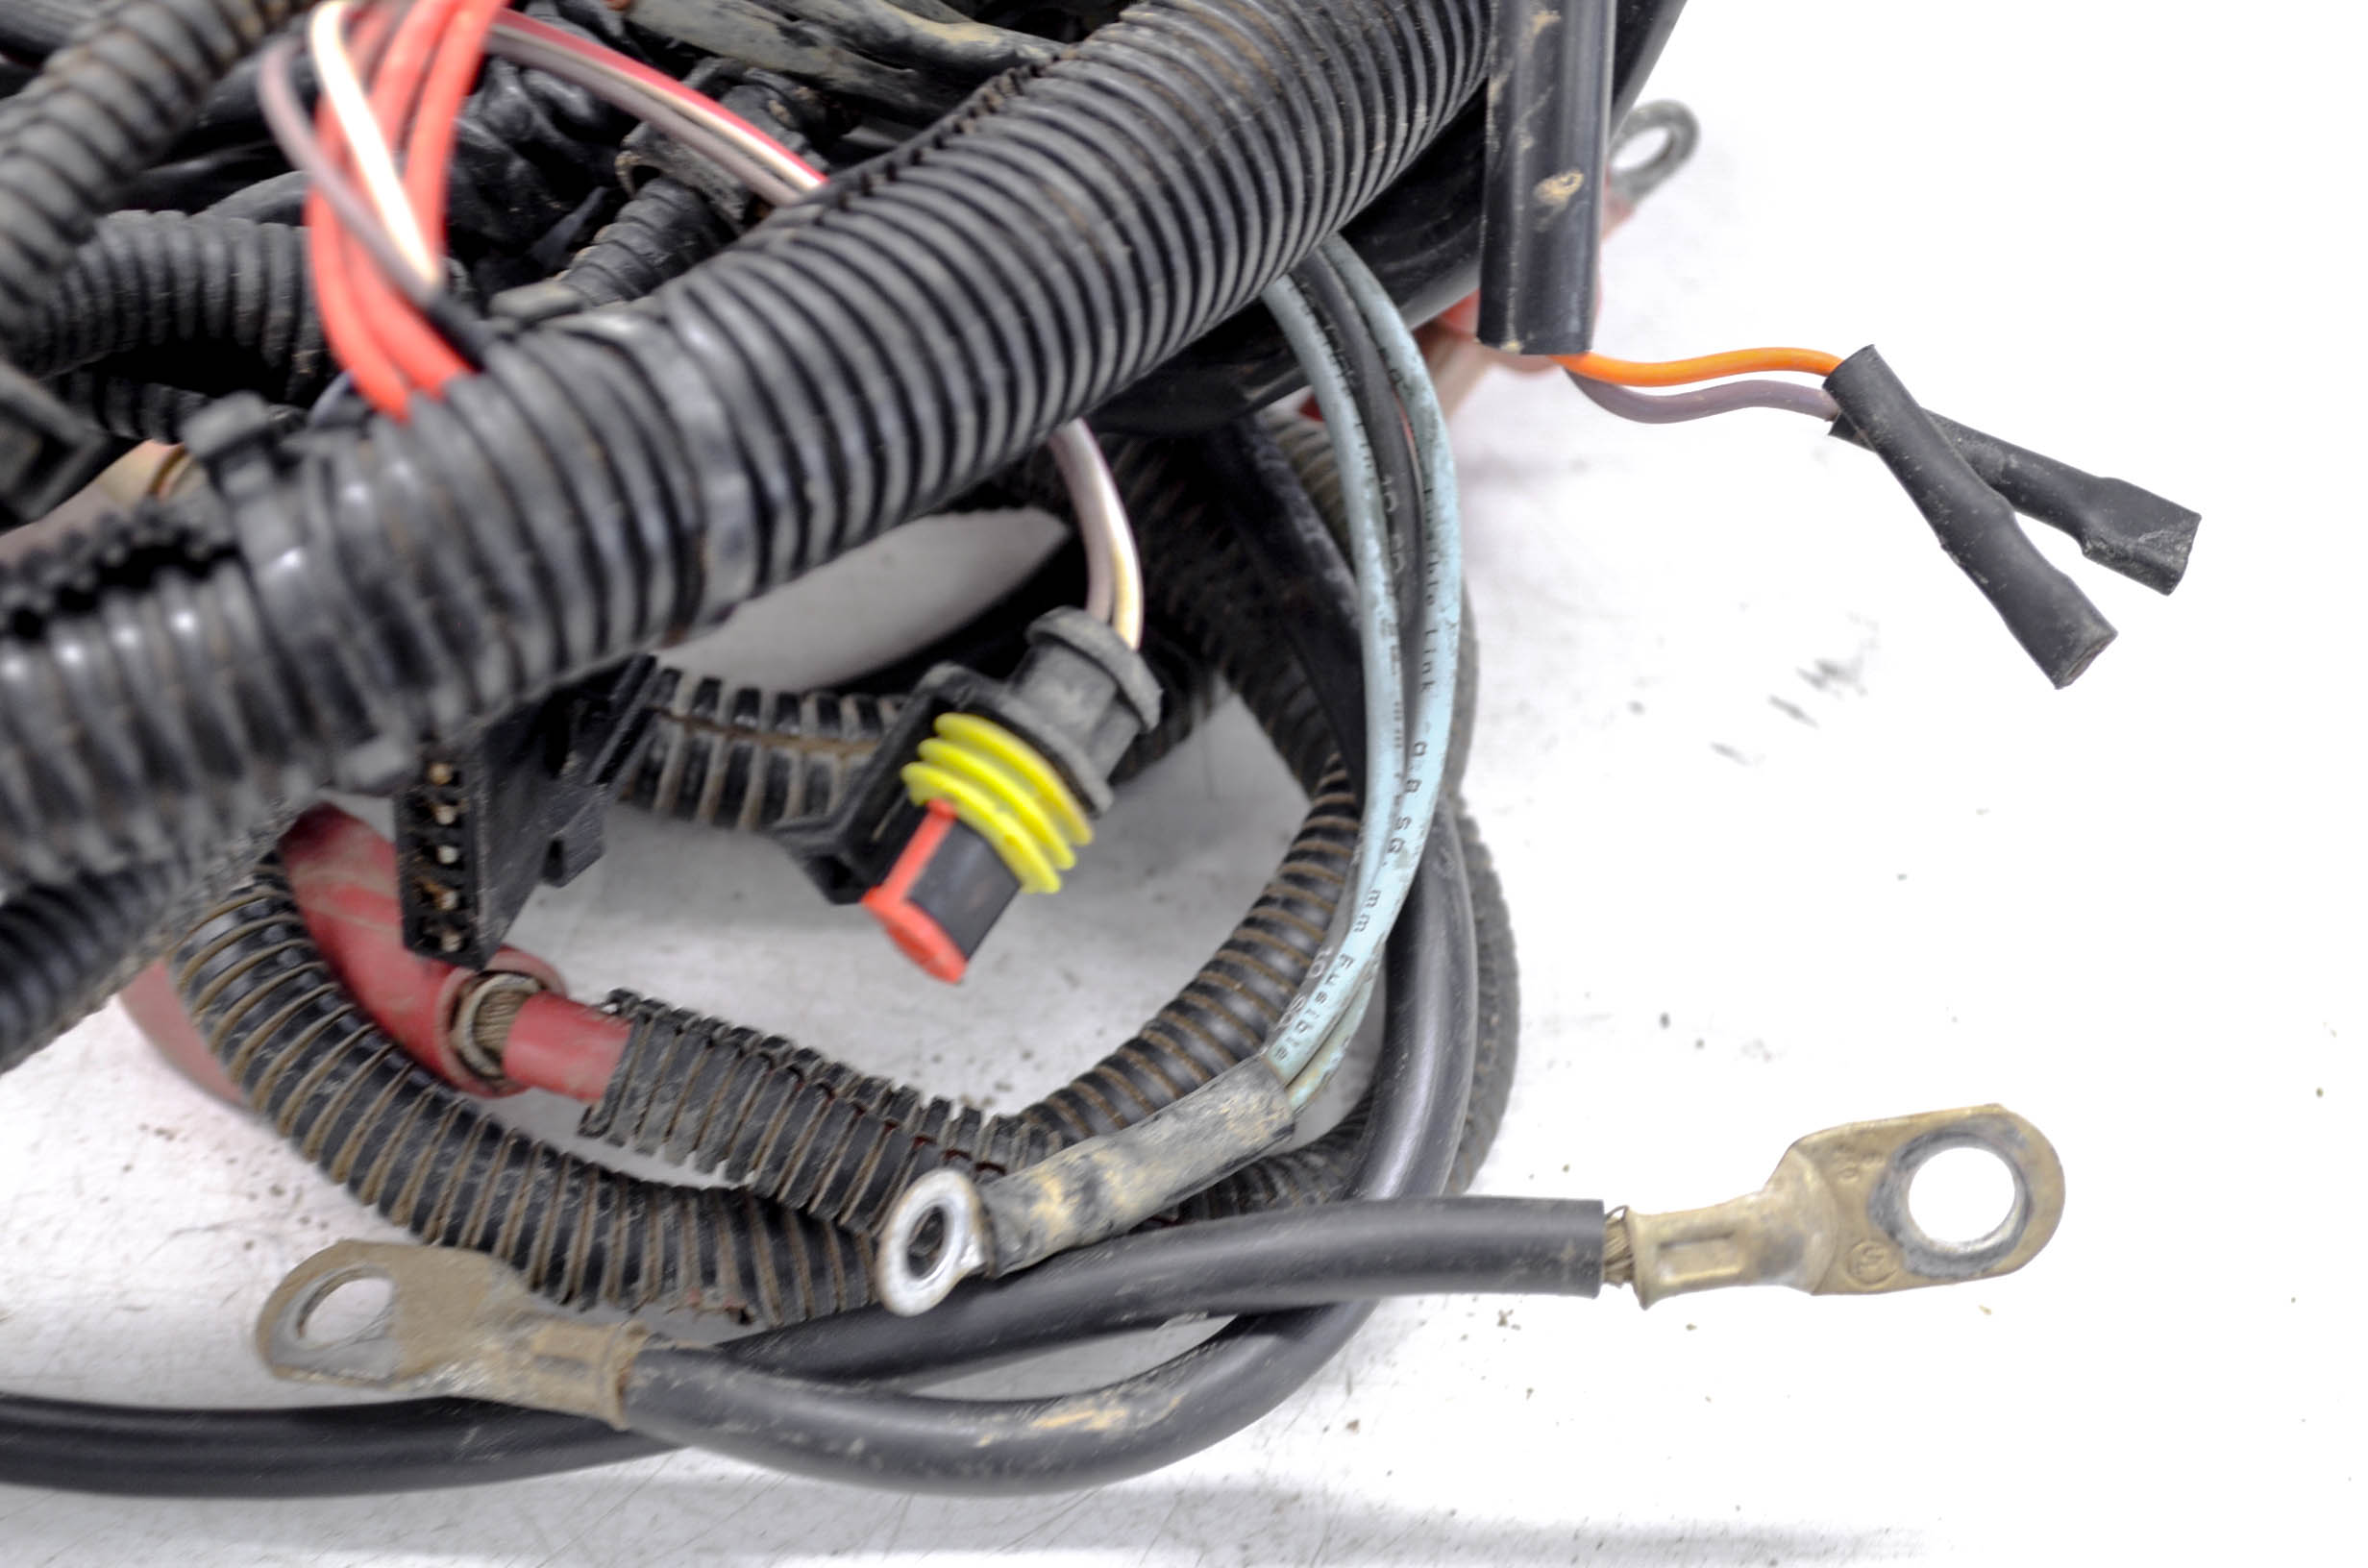 09 polaris sportsman 800 x2 4x4 wire harness electrical ... 4x4 harness